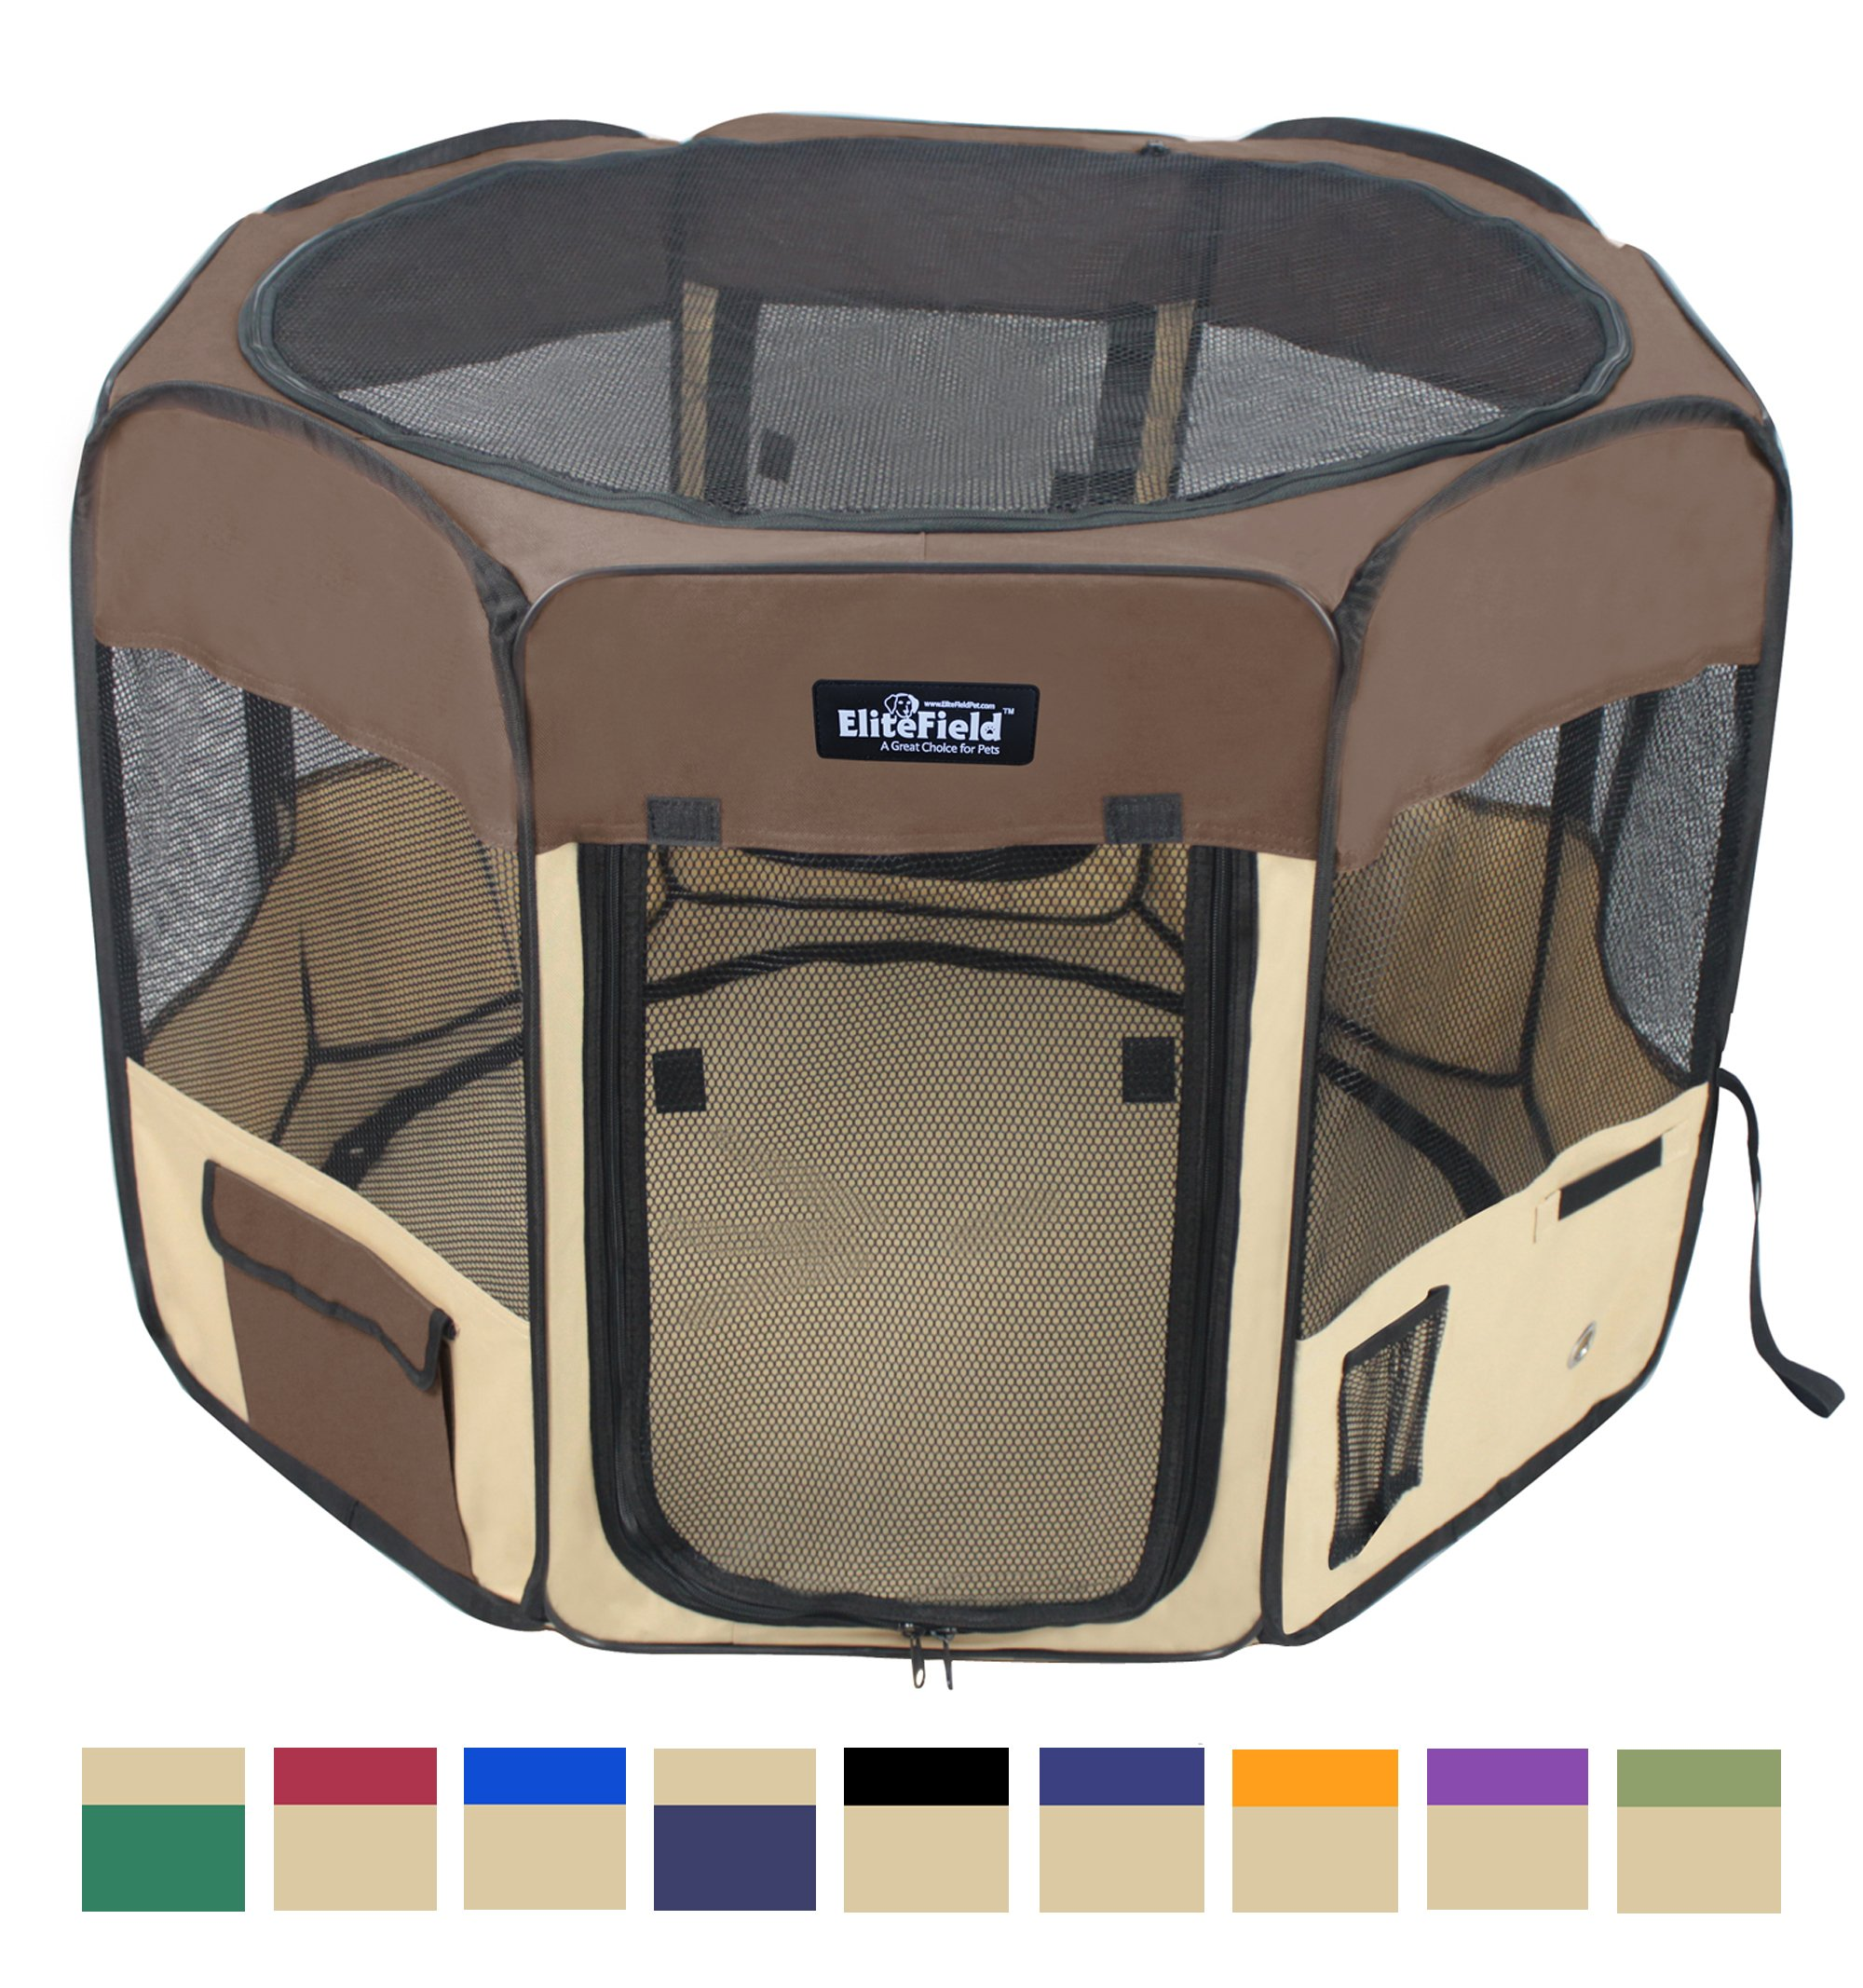 EliteField 2-Door Soft Pet Playpen, Exercise Pen, Multiple Sizes and Colors Available for Dogs, Cats and Other Pets (48'' x 48'' x 32''H, Brown+Beige) by EliteField